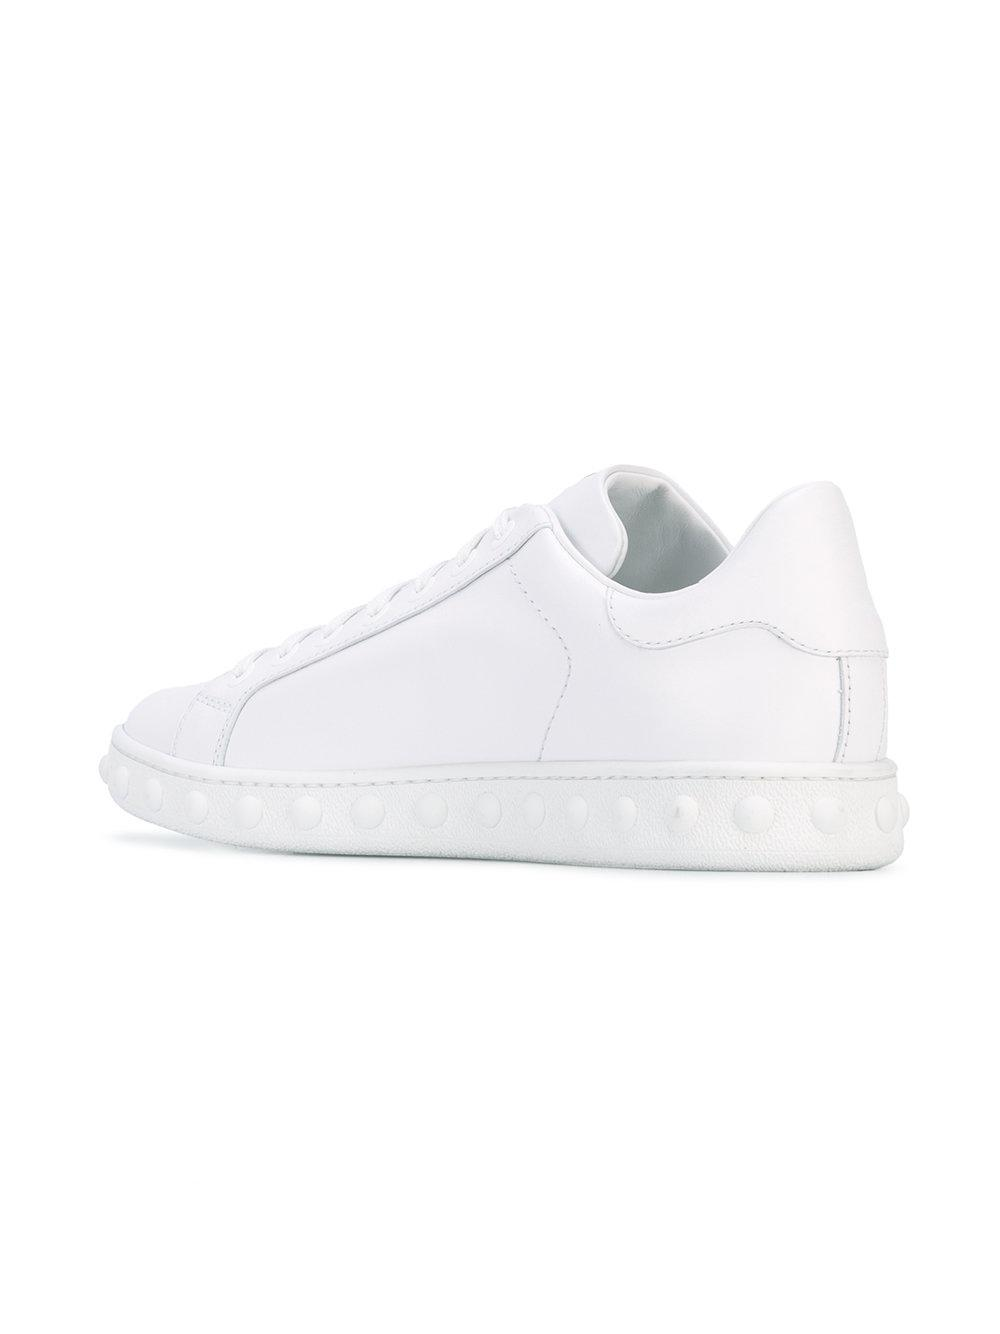 Moncler Rubber Fifi Sneakers in White